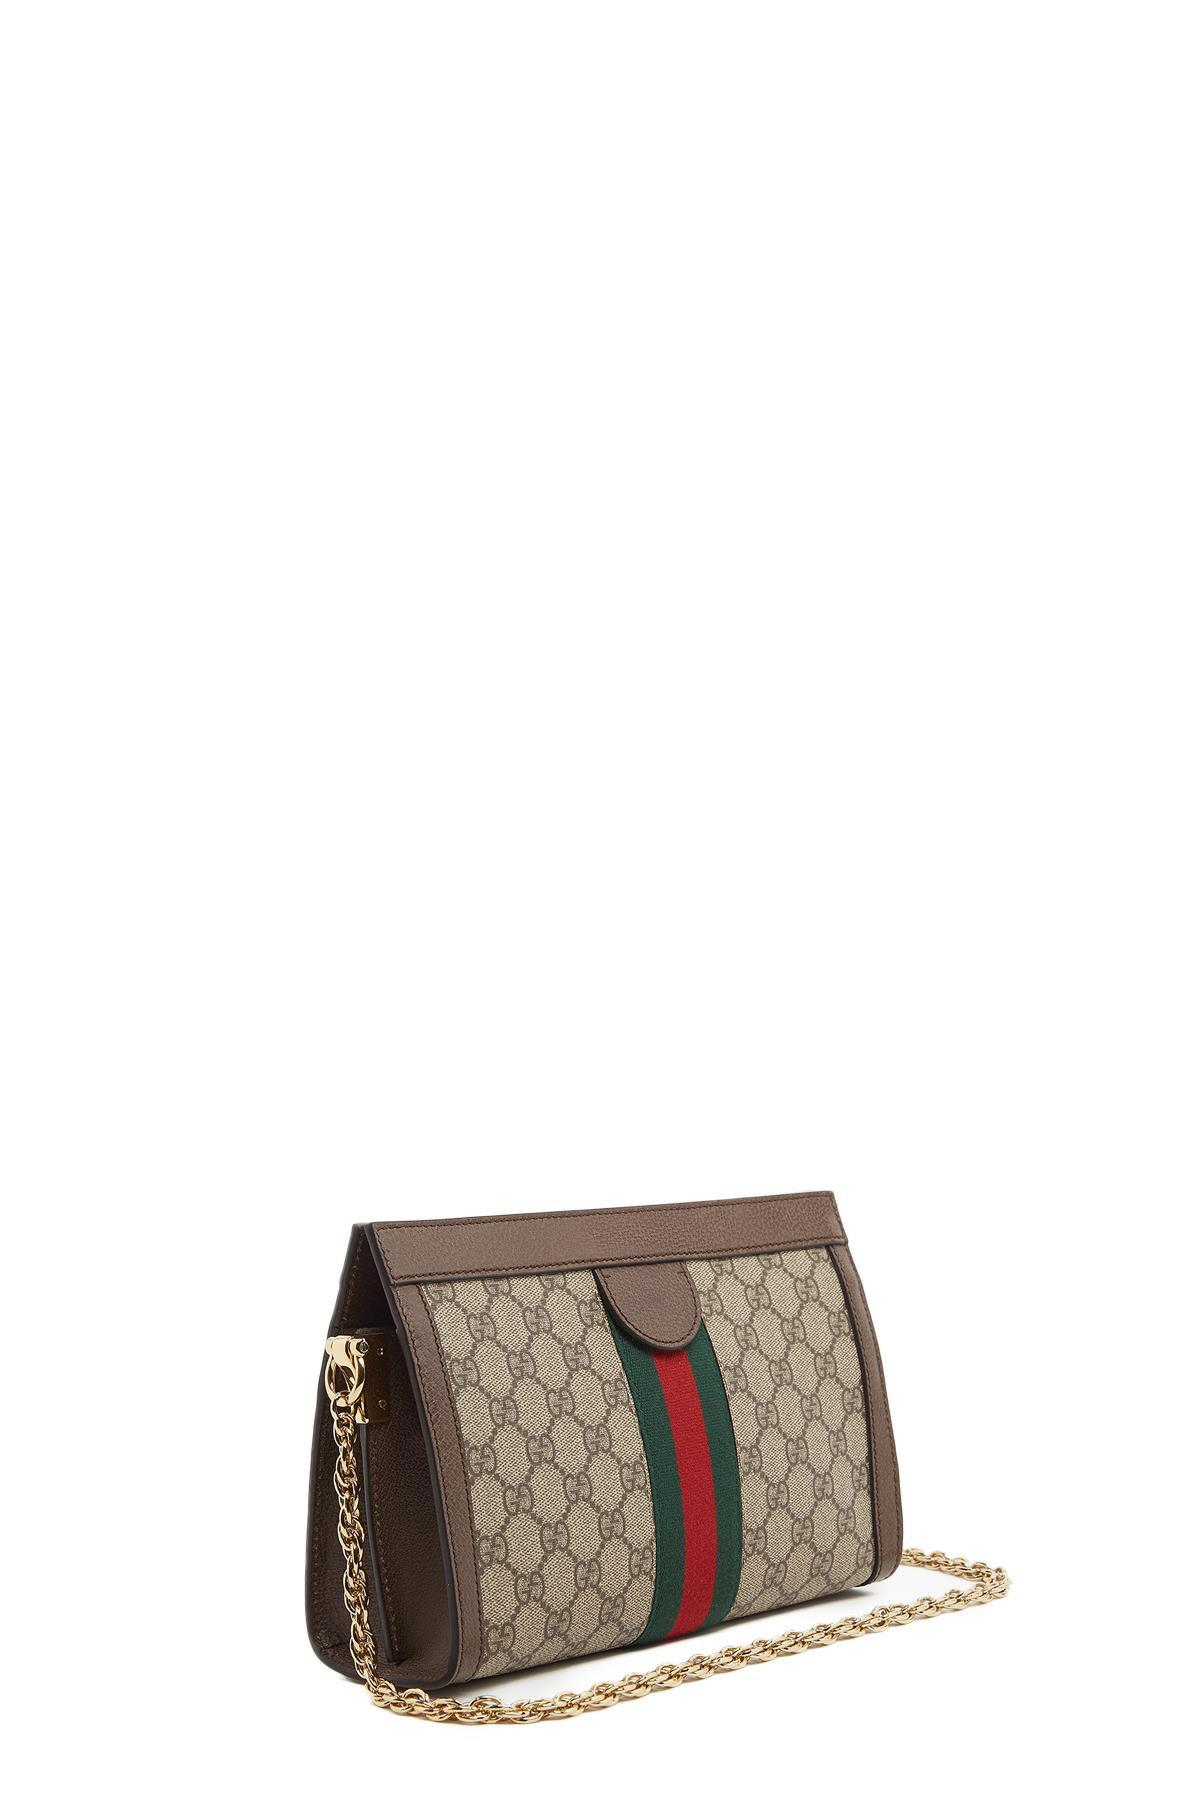 3dd1403c5 Lyst - Gucci 'ophidia' Shoulder Bag